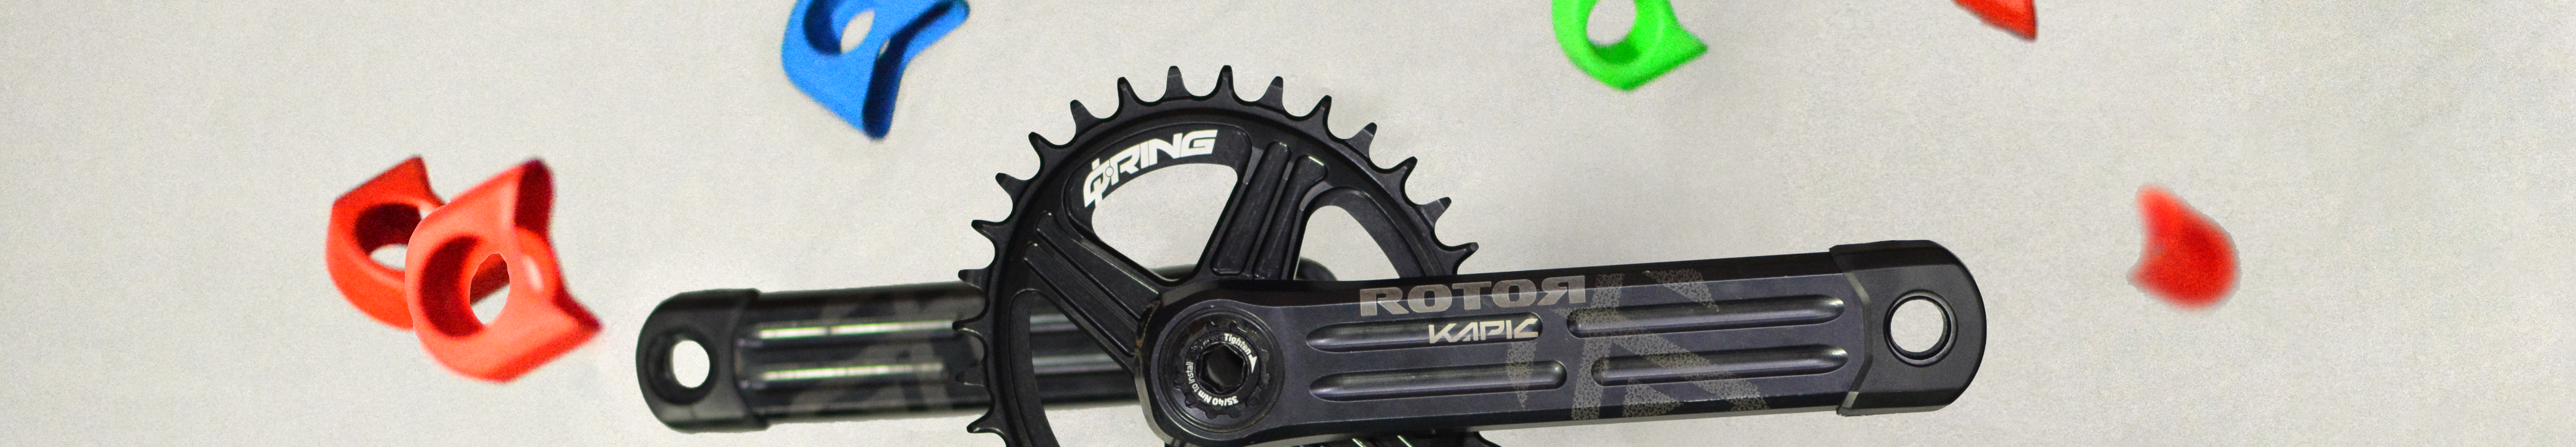 ROTOR KAPIC Cranks with colorful boots in red, orange, yellow, blue, and green